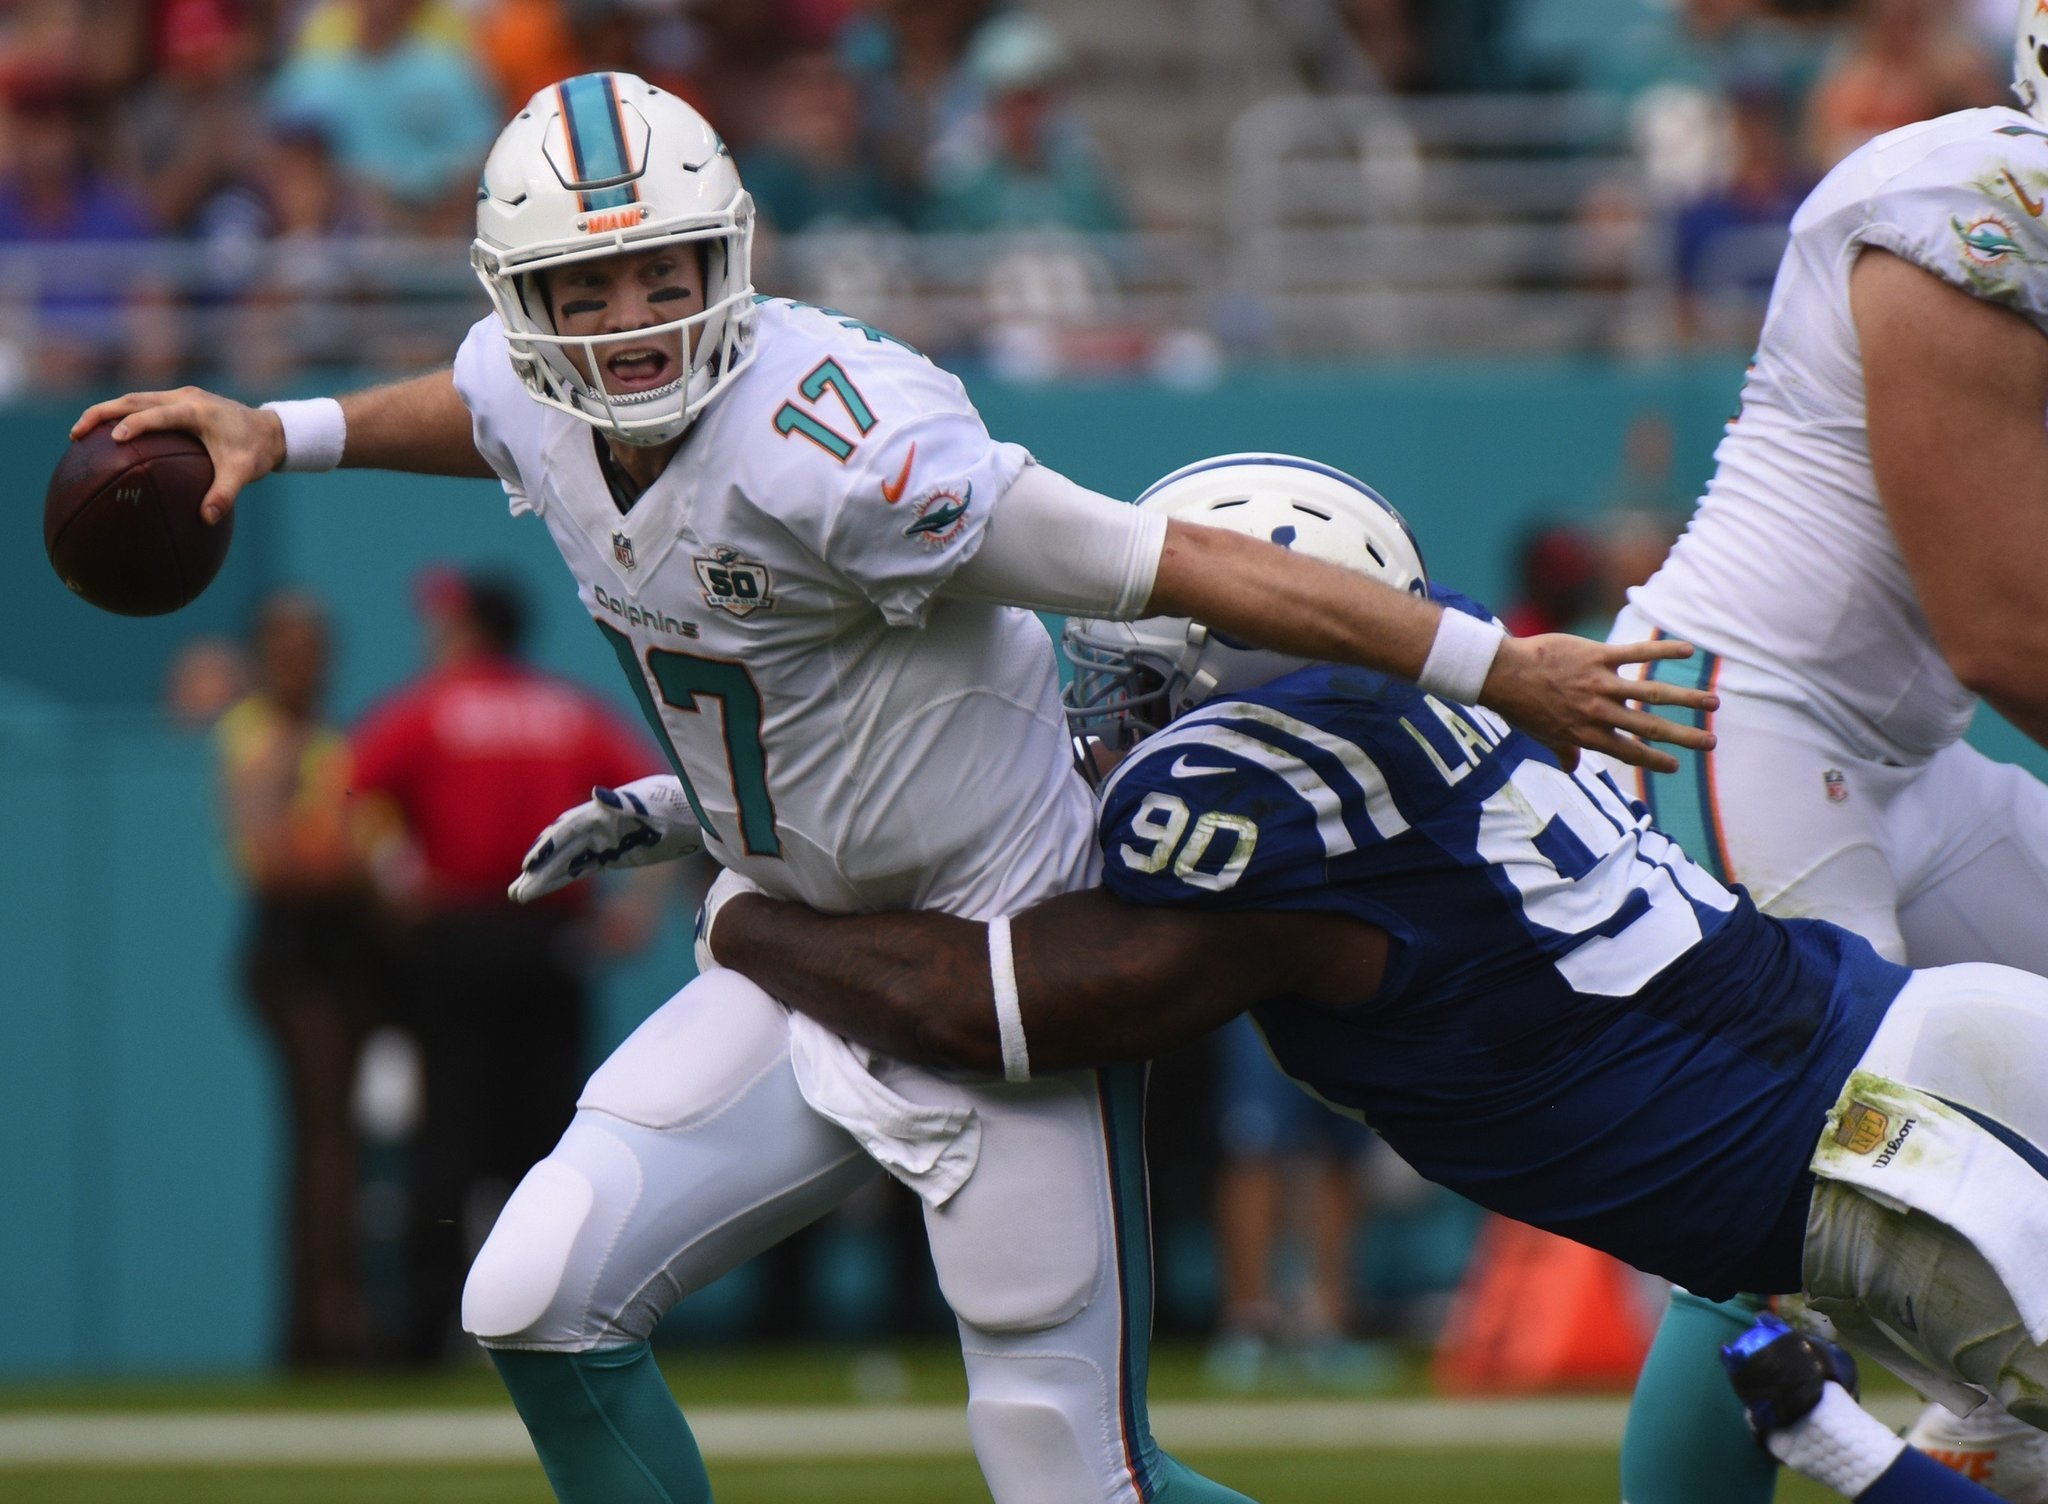 Sfl-these-miami-dolphins-need-to-have-a-big-year-20160721